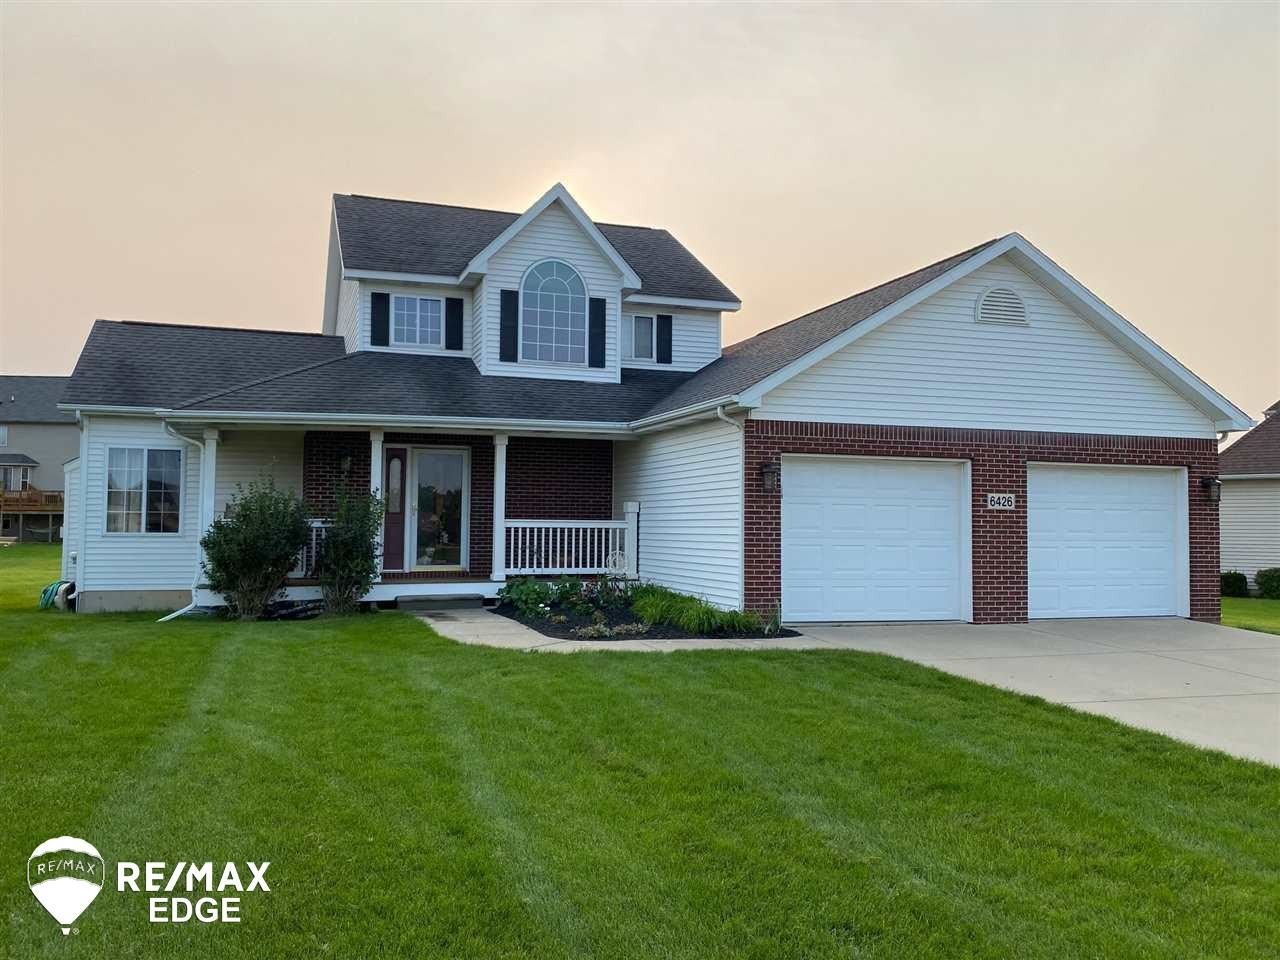 6426 Wailea DR, Grand Blanc, MI 48439 - MLS#: 50024201